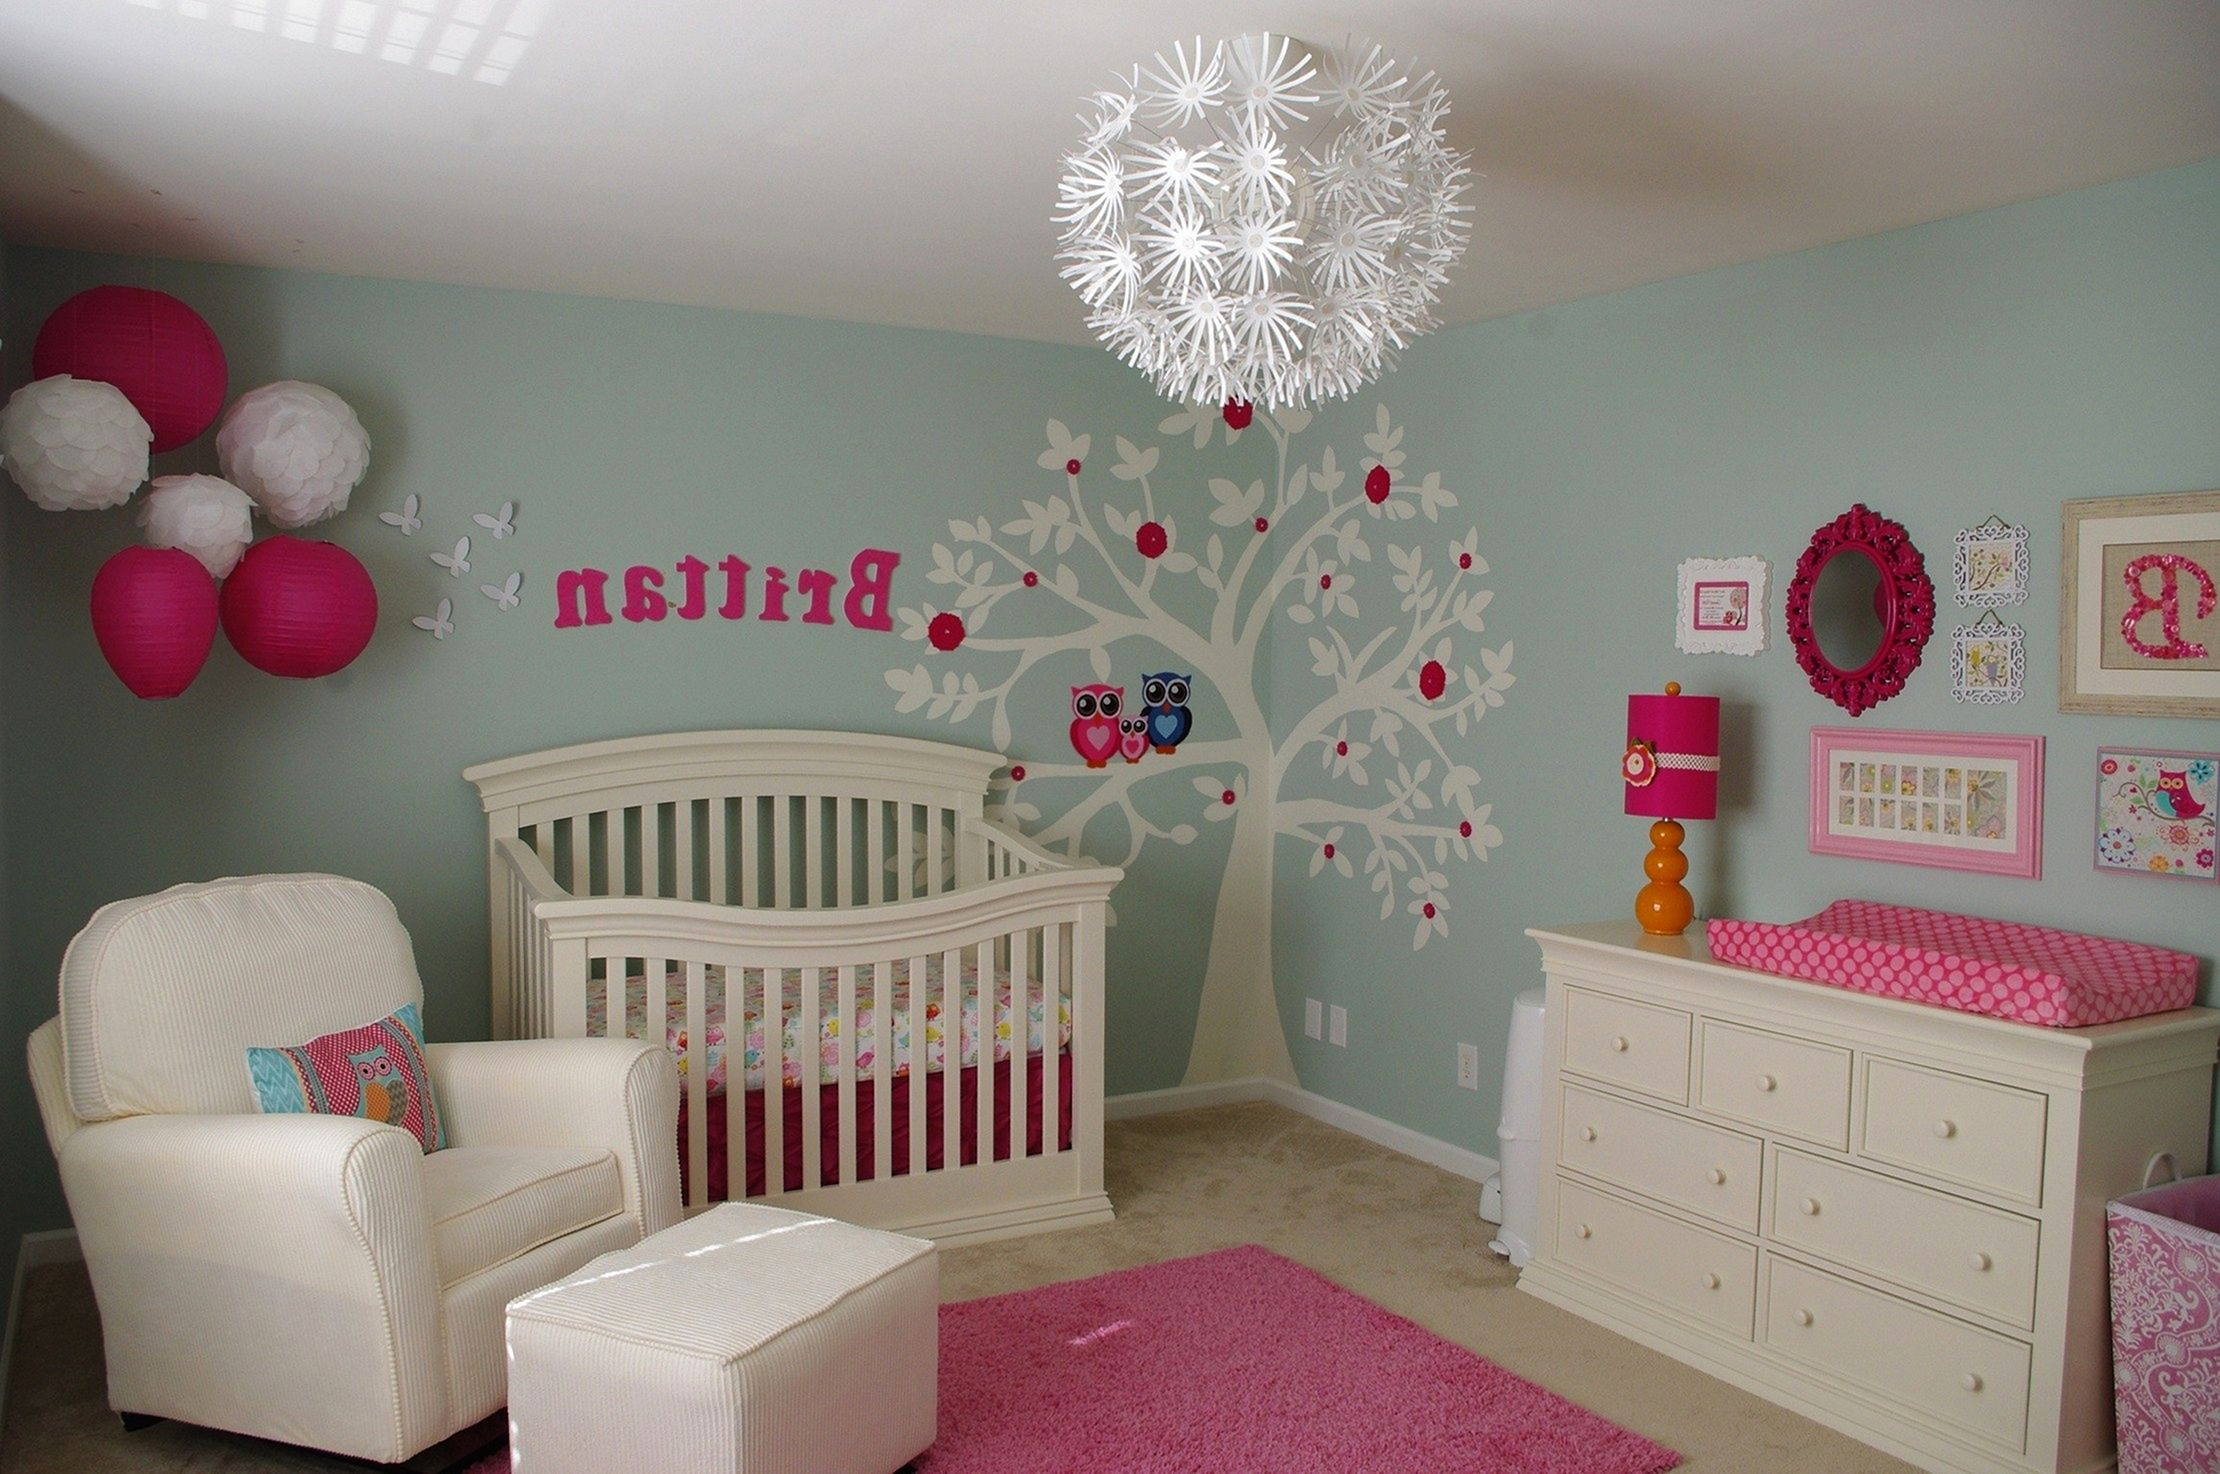 Best ideas about DIY Baby Room . Save or Pin DIY Baby Room Decor Ideas For Girls DIY Baby Room Decor Now.